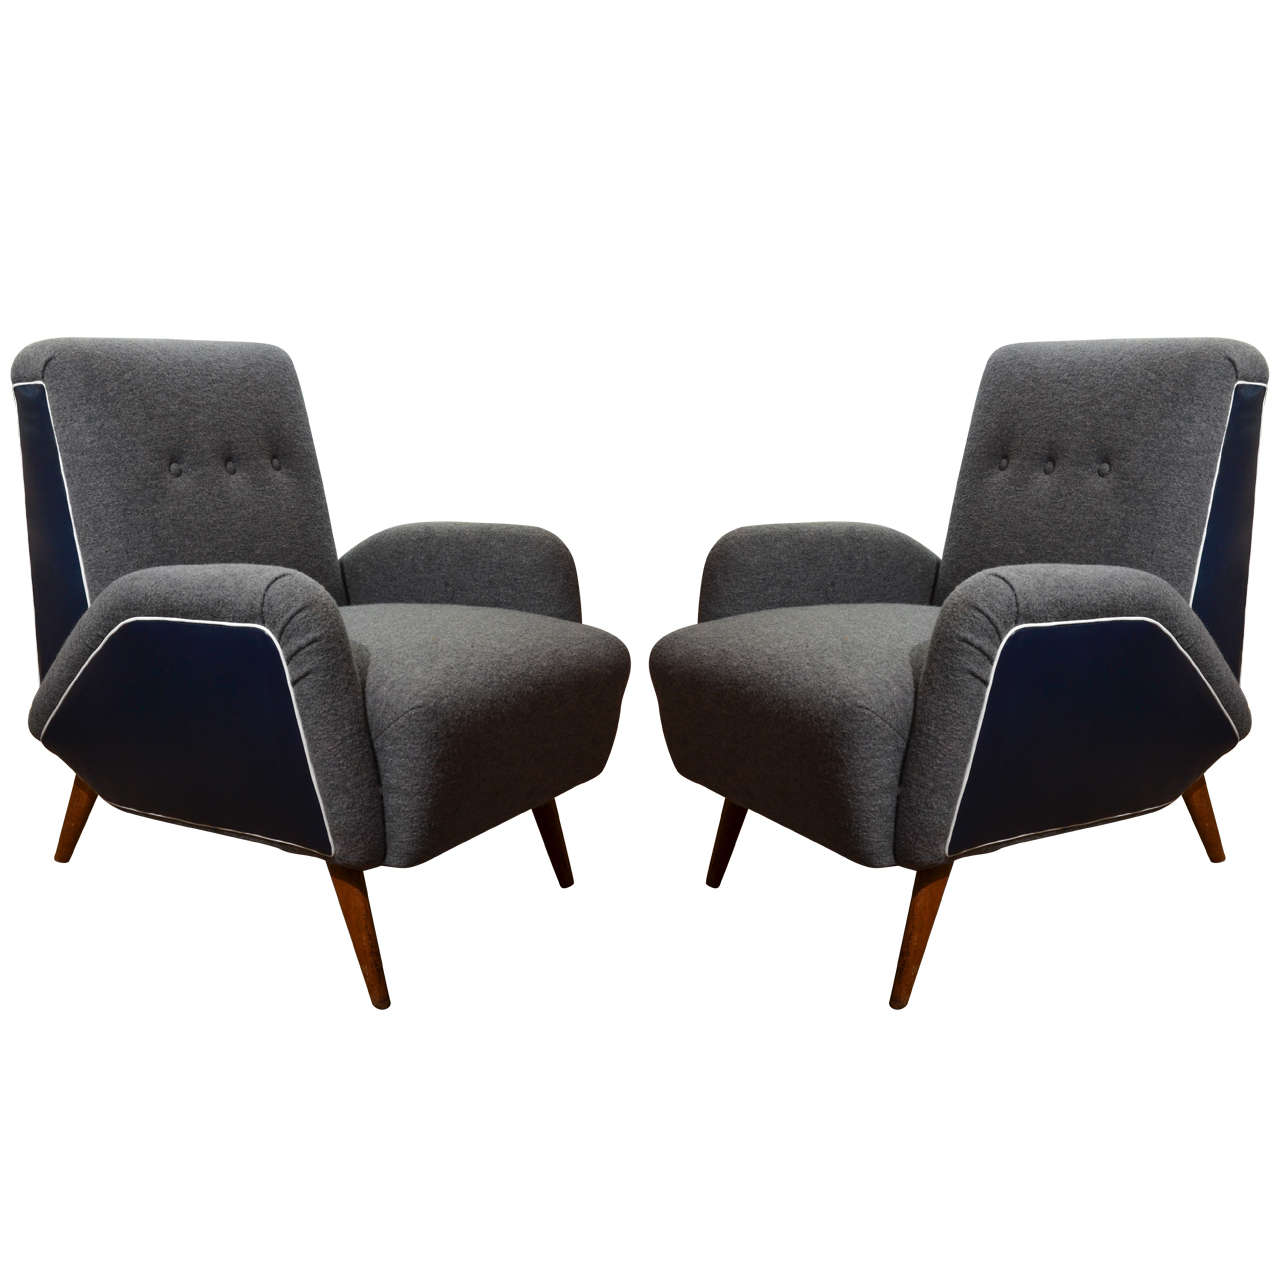 Midcentury Italian Armchairs in the Style of Ico Parisi